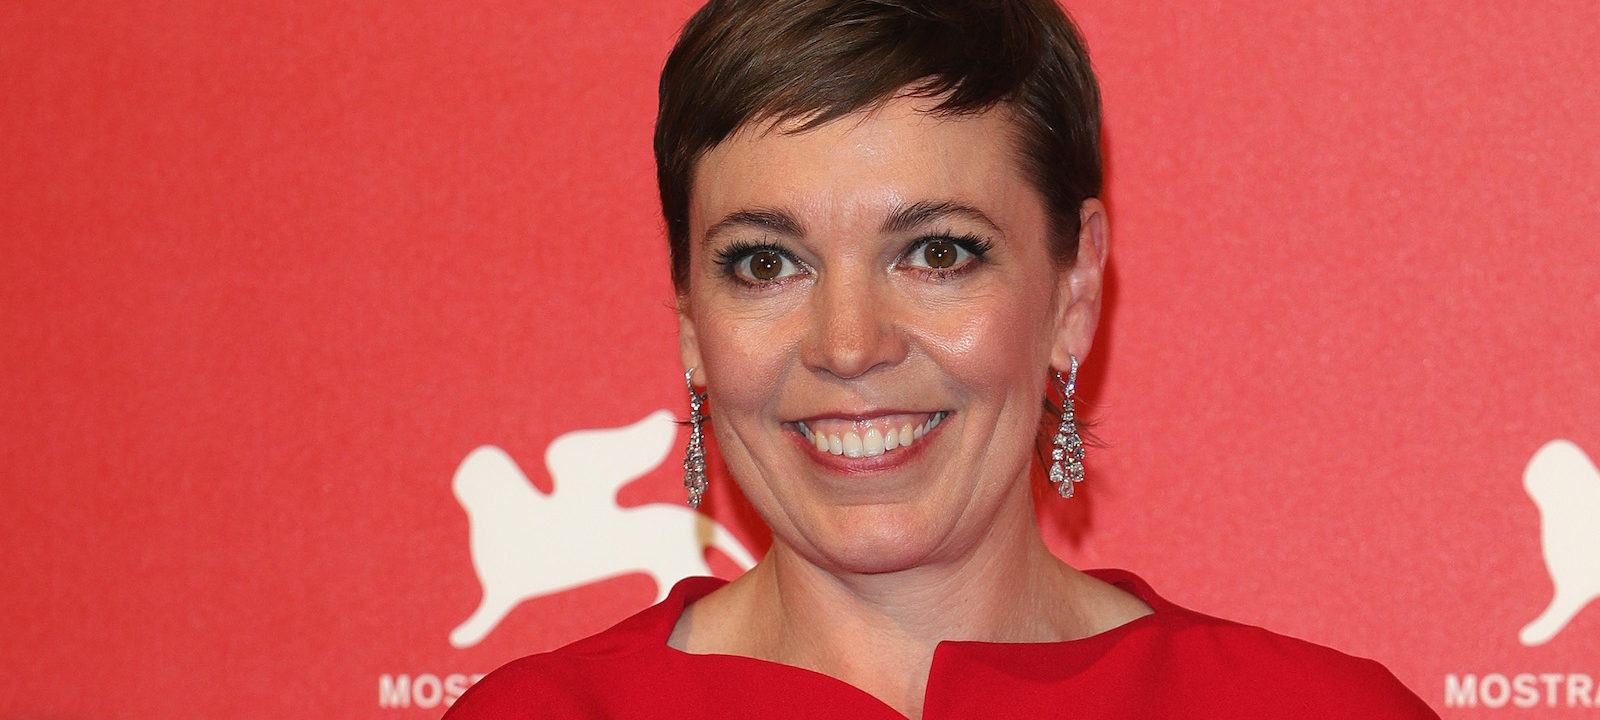 Olivia Colman poses with the Coppa Volpi  for 'The Favourite'  at the Winners Photocall during the 75th Venice Film Festival at Sala Grande on September 8, 2018 in Venice, Italy.